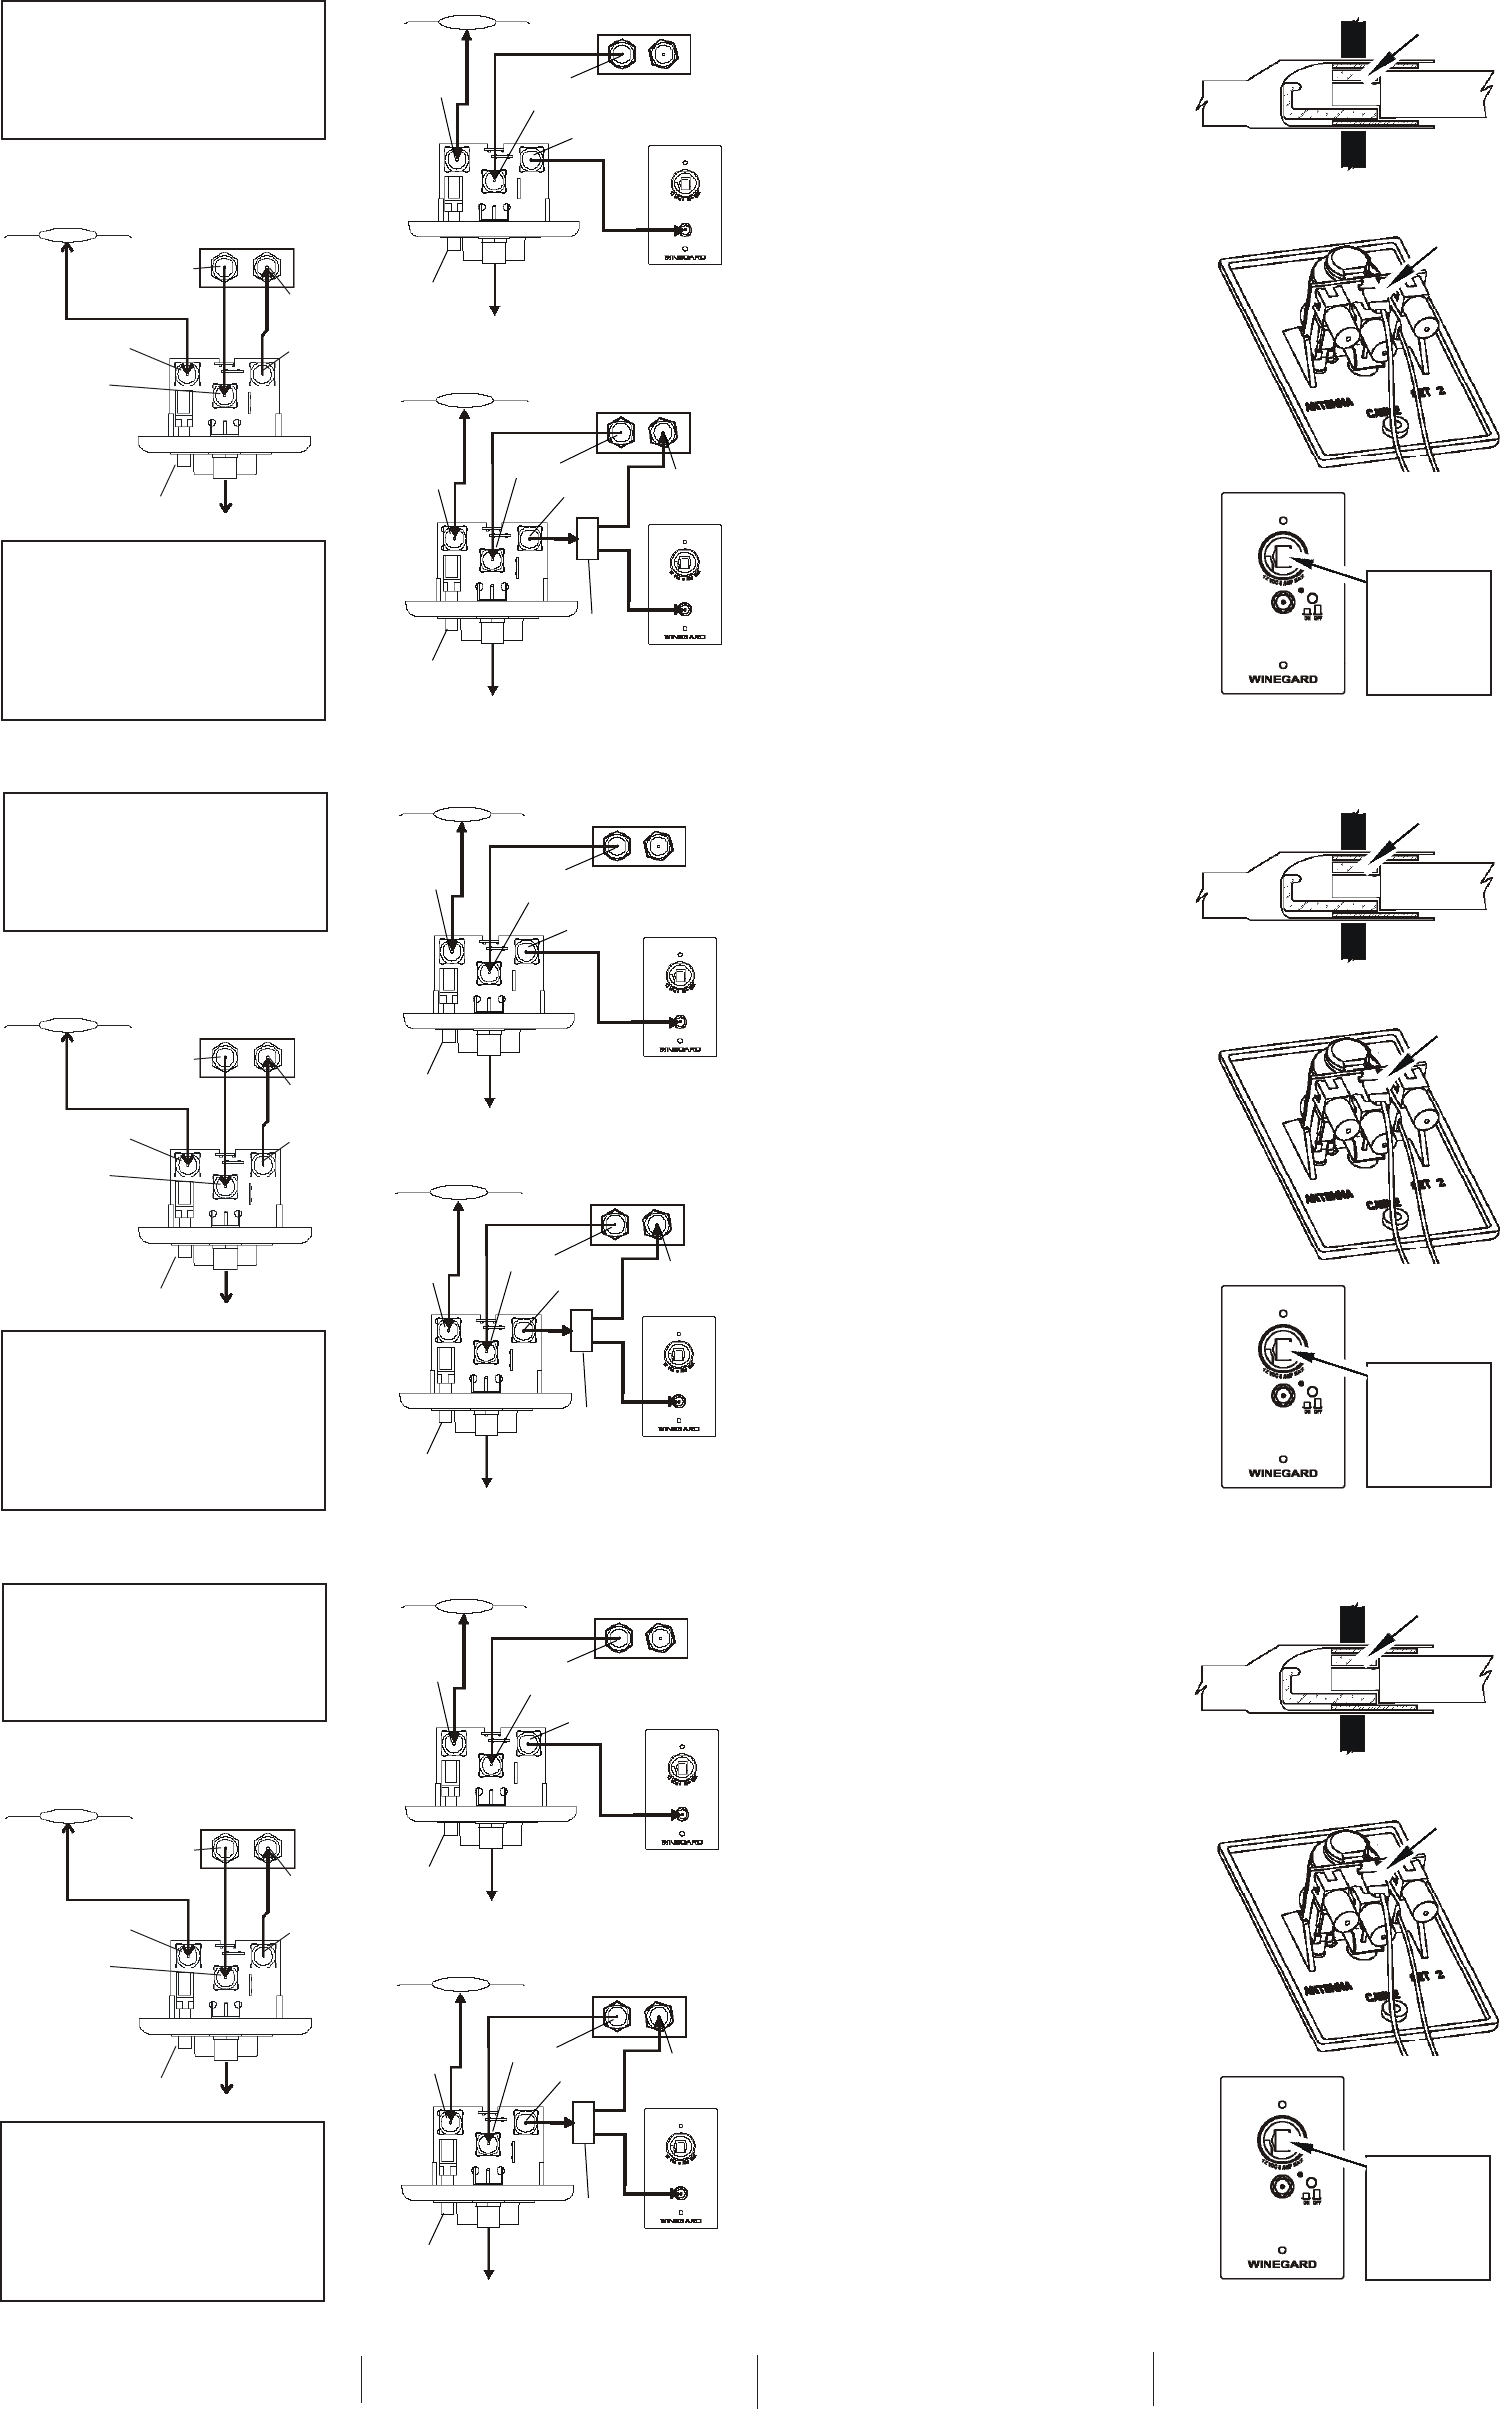 7bc425c4 3680 4763 90c4 788f612704c9 bg2 page 2 of winegard power supply rv 7012 user guide manualsonline com 30 Amp RV Wiring Diagram at creativeand.co